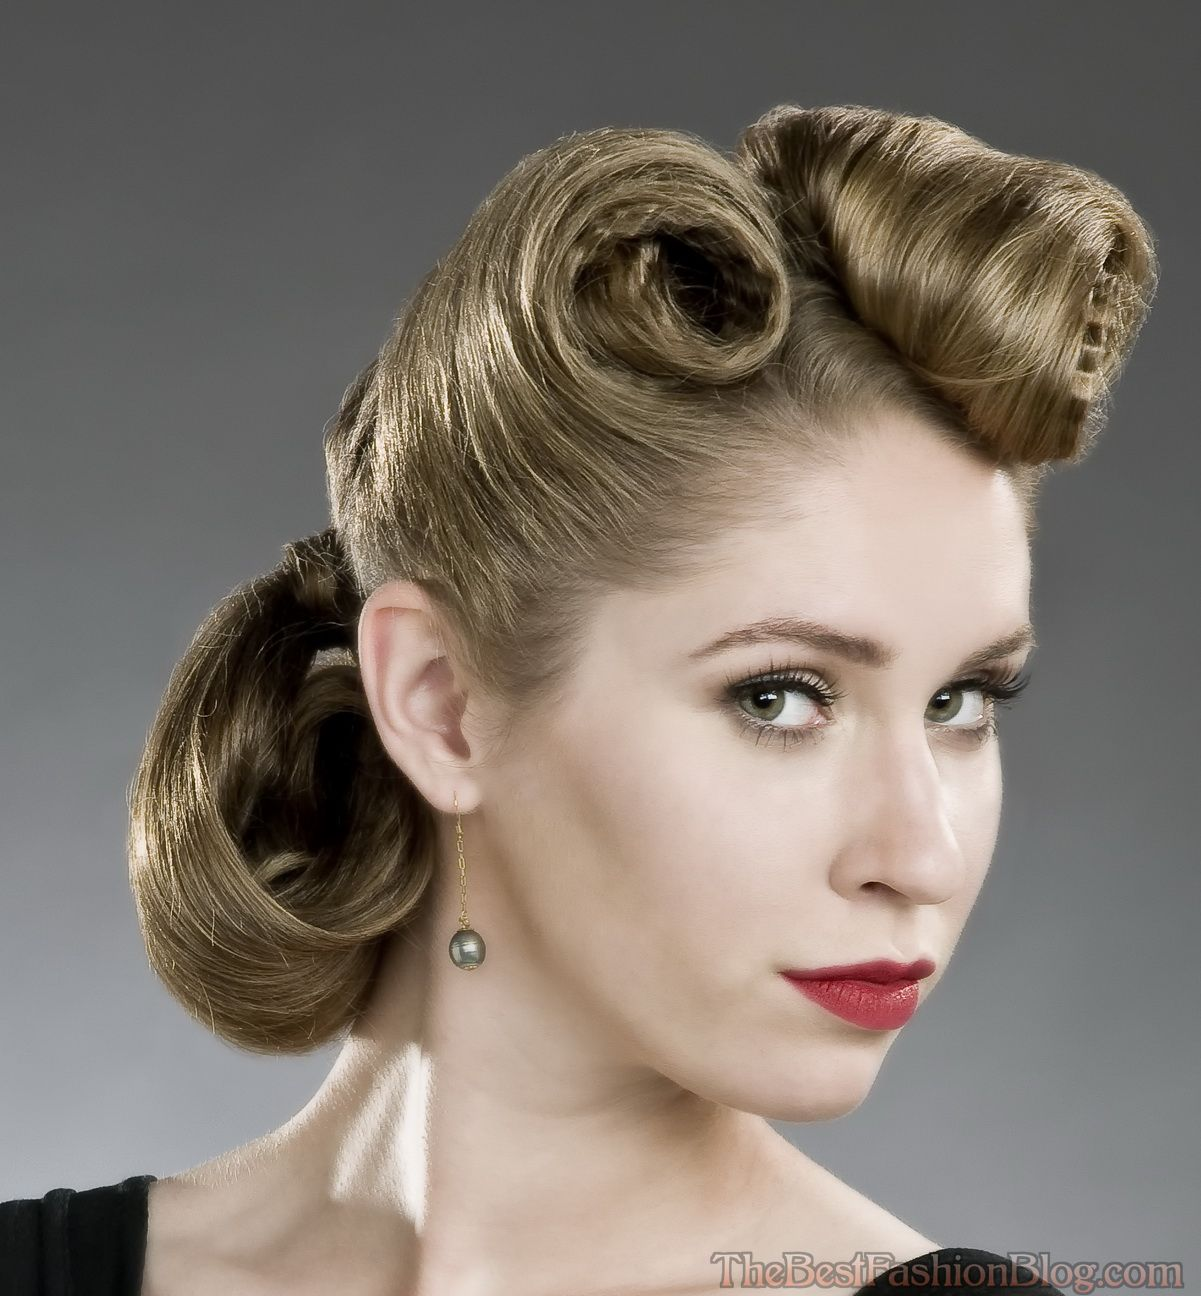 10 Womens Retro Hairstyles Are In Style For 2015 7 Blogrope